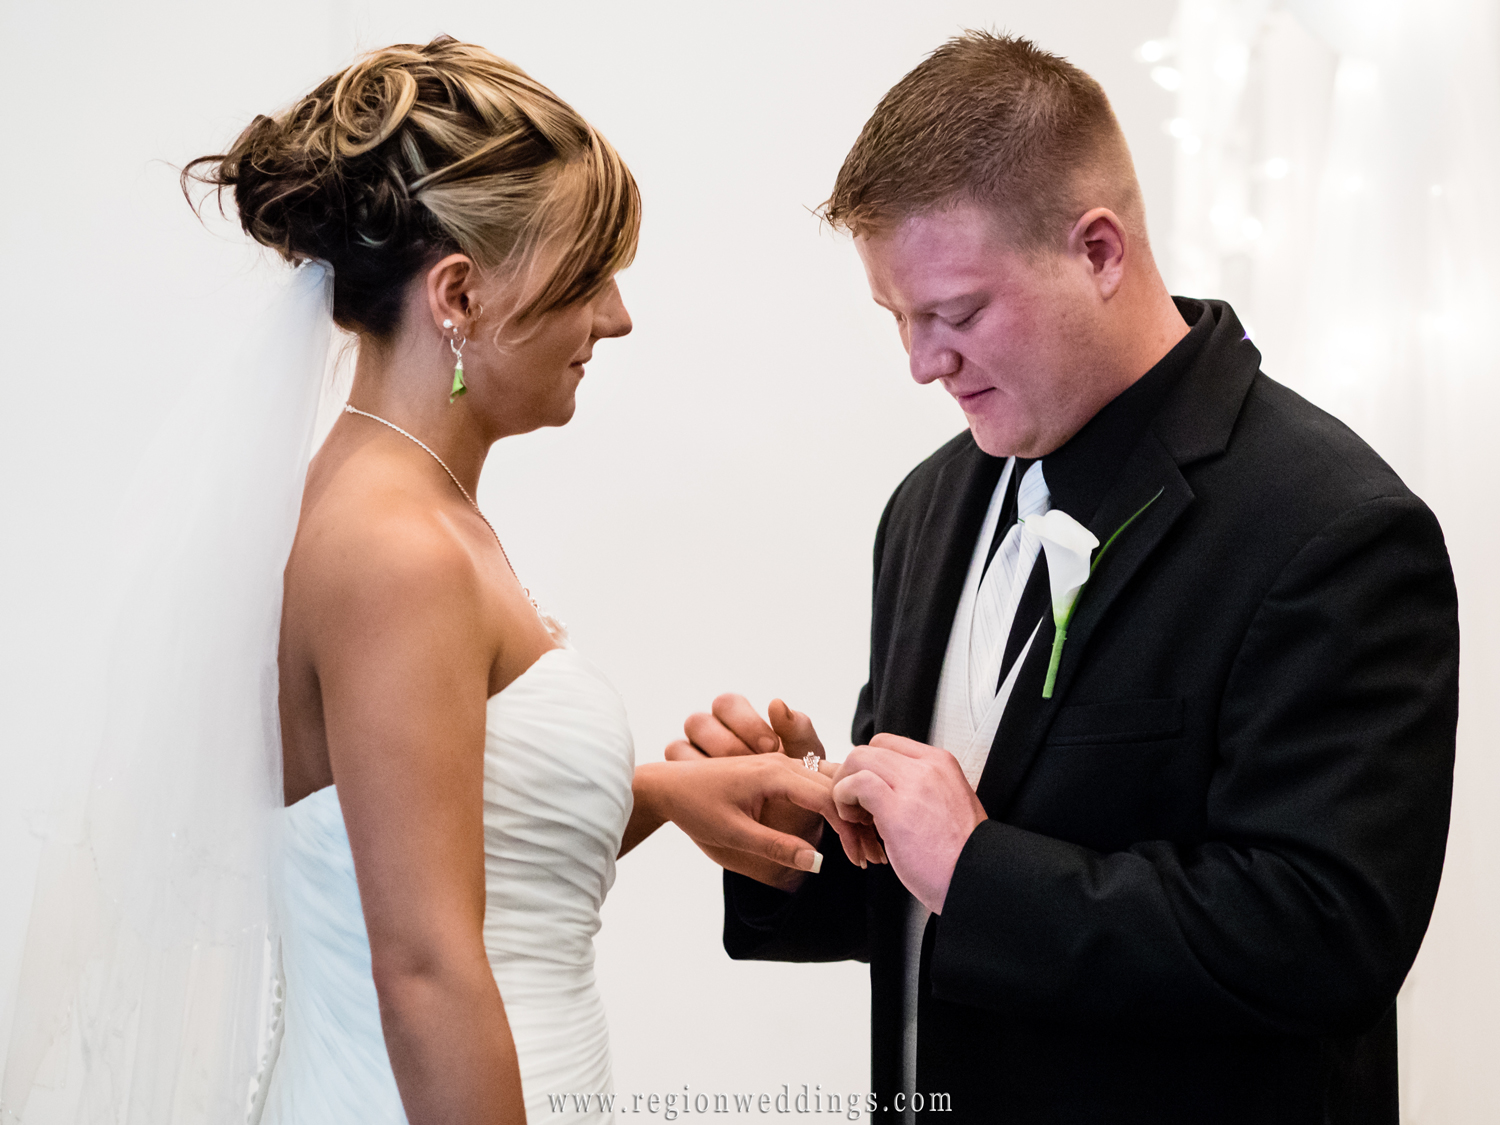 The groom places the ring on his bride's finger at an indoor ceremony at The Patrician.